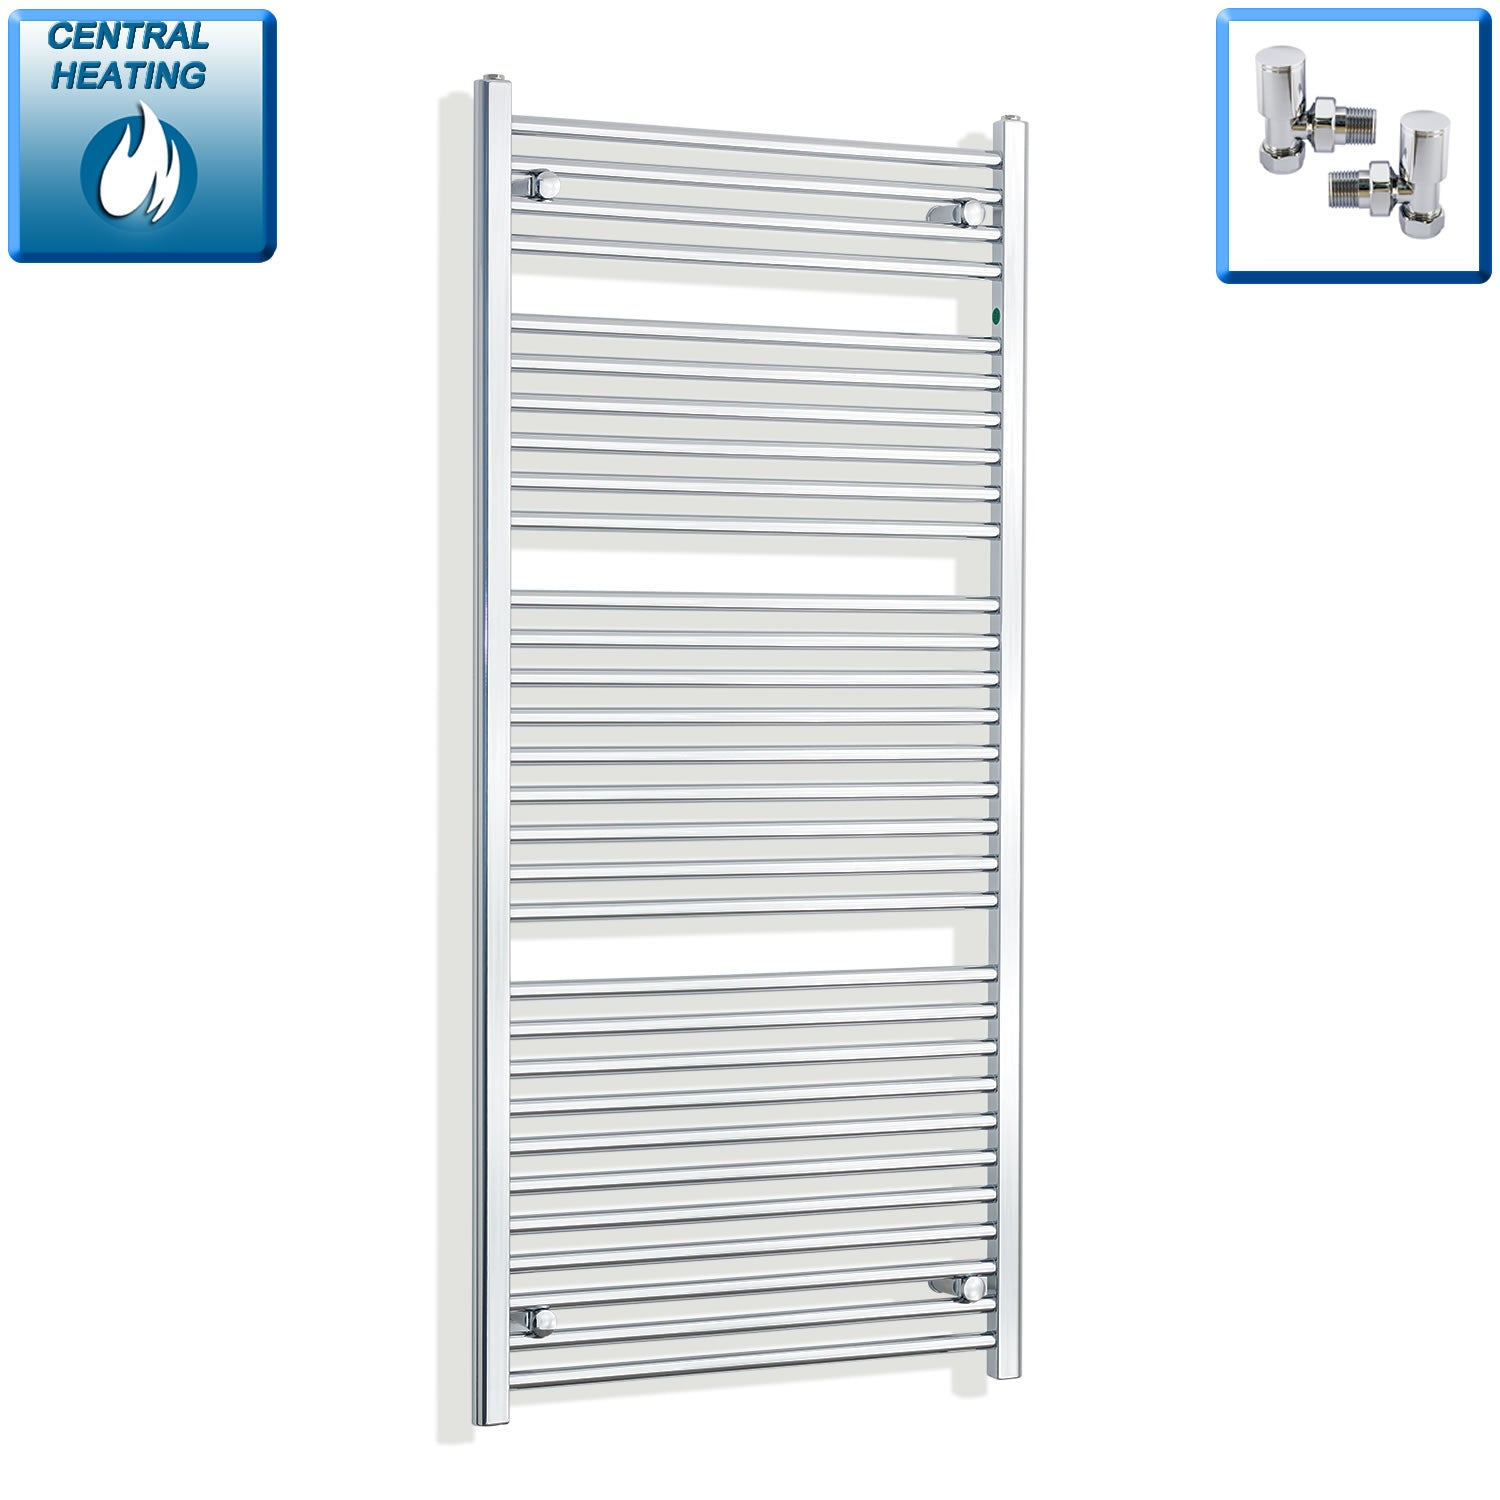 700mm Wide 1500mm High Curved Chrome Heated Towel Rail Radiator HTR,With Angled Valve